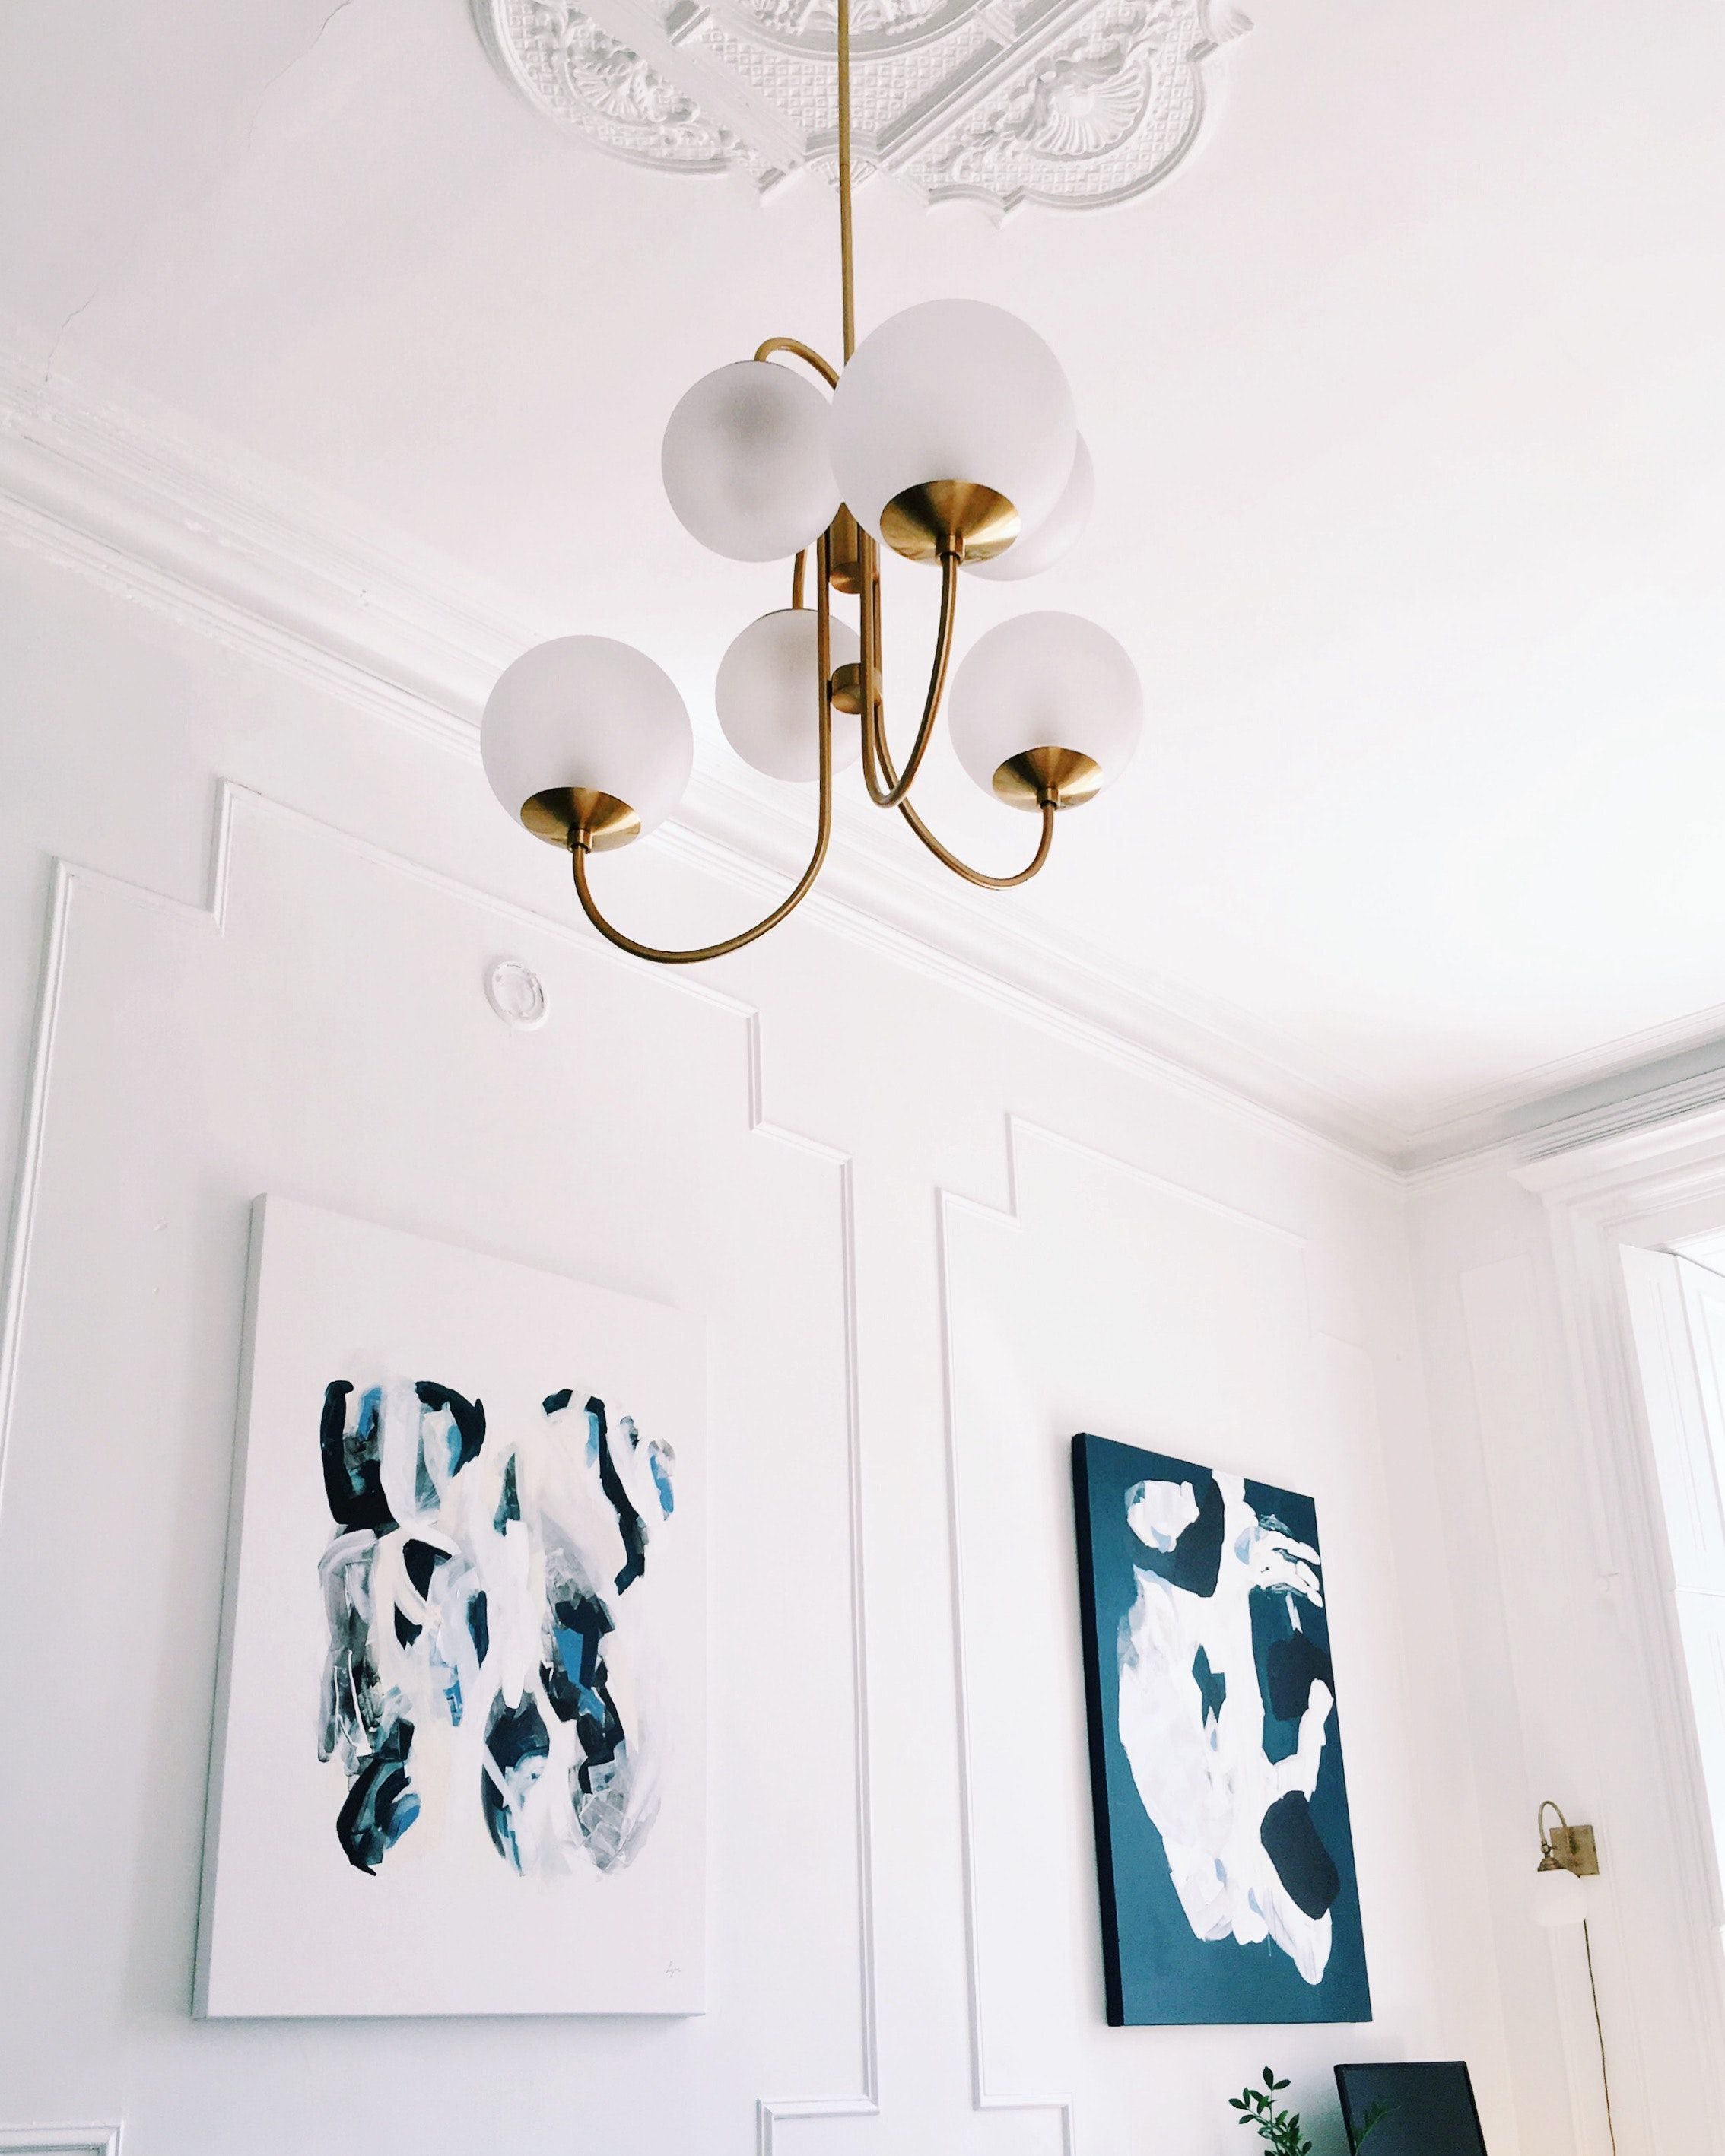 Square Room Interior Design: A Thoughtfully Styled 500-Square-Foot Montreal Studio